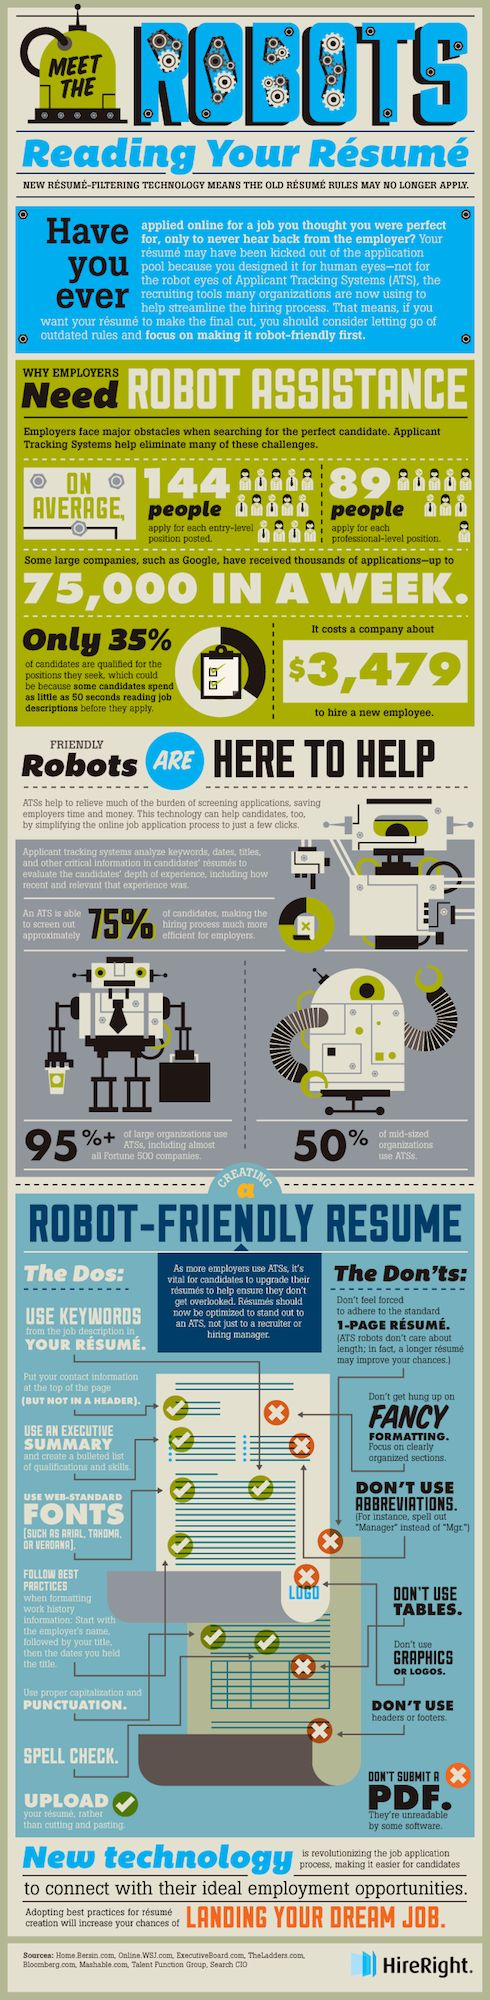 Ats Resume Template%0A Meet the Robots Reading Your Resume  applicant tracking systems  how to format  resume for ats